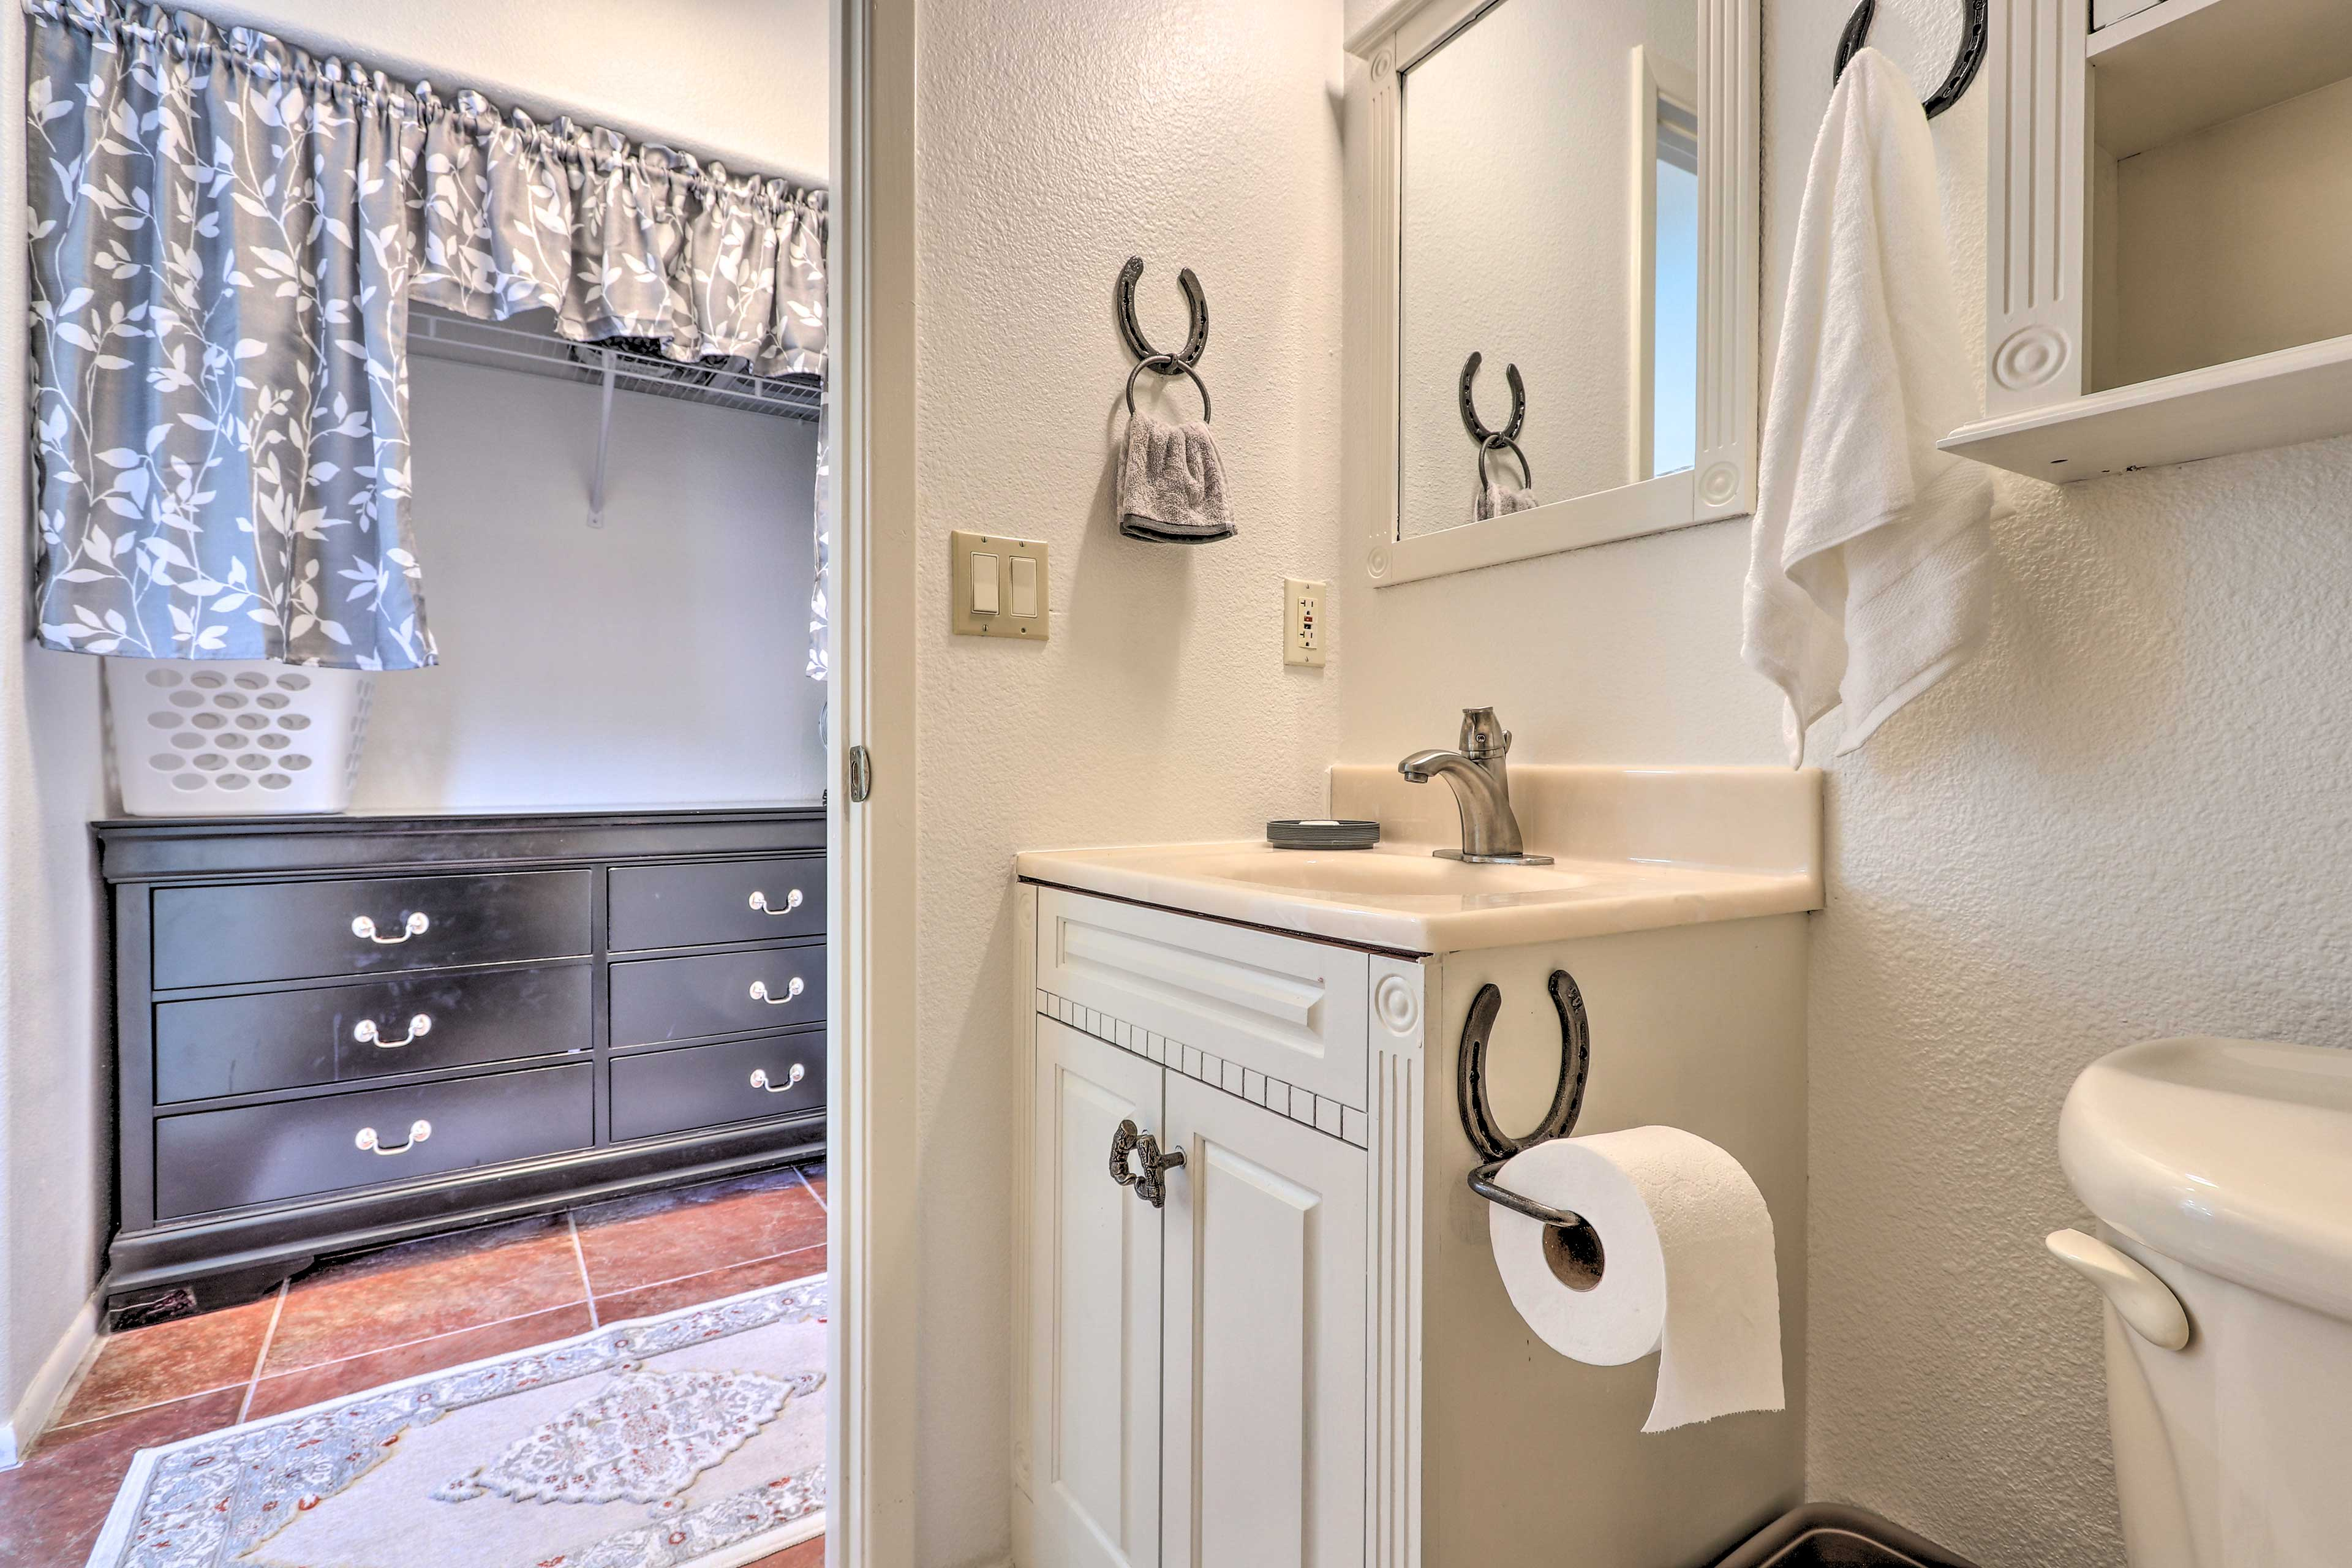 The en-suite bathroom adds an extra layer of privacy.